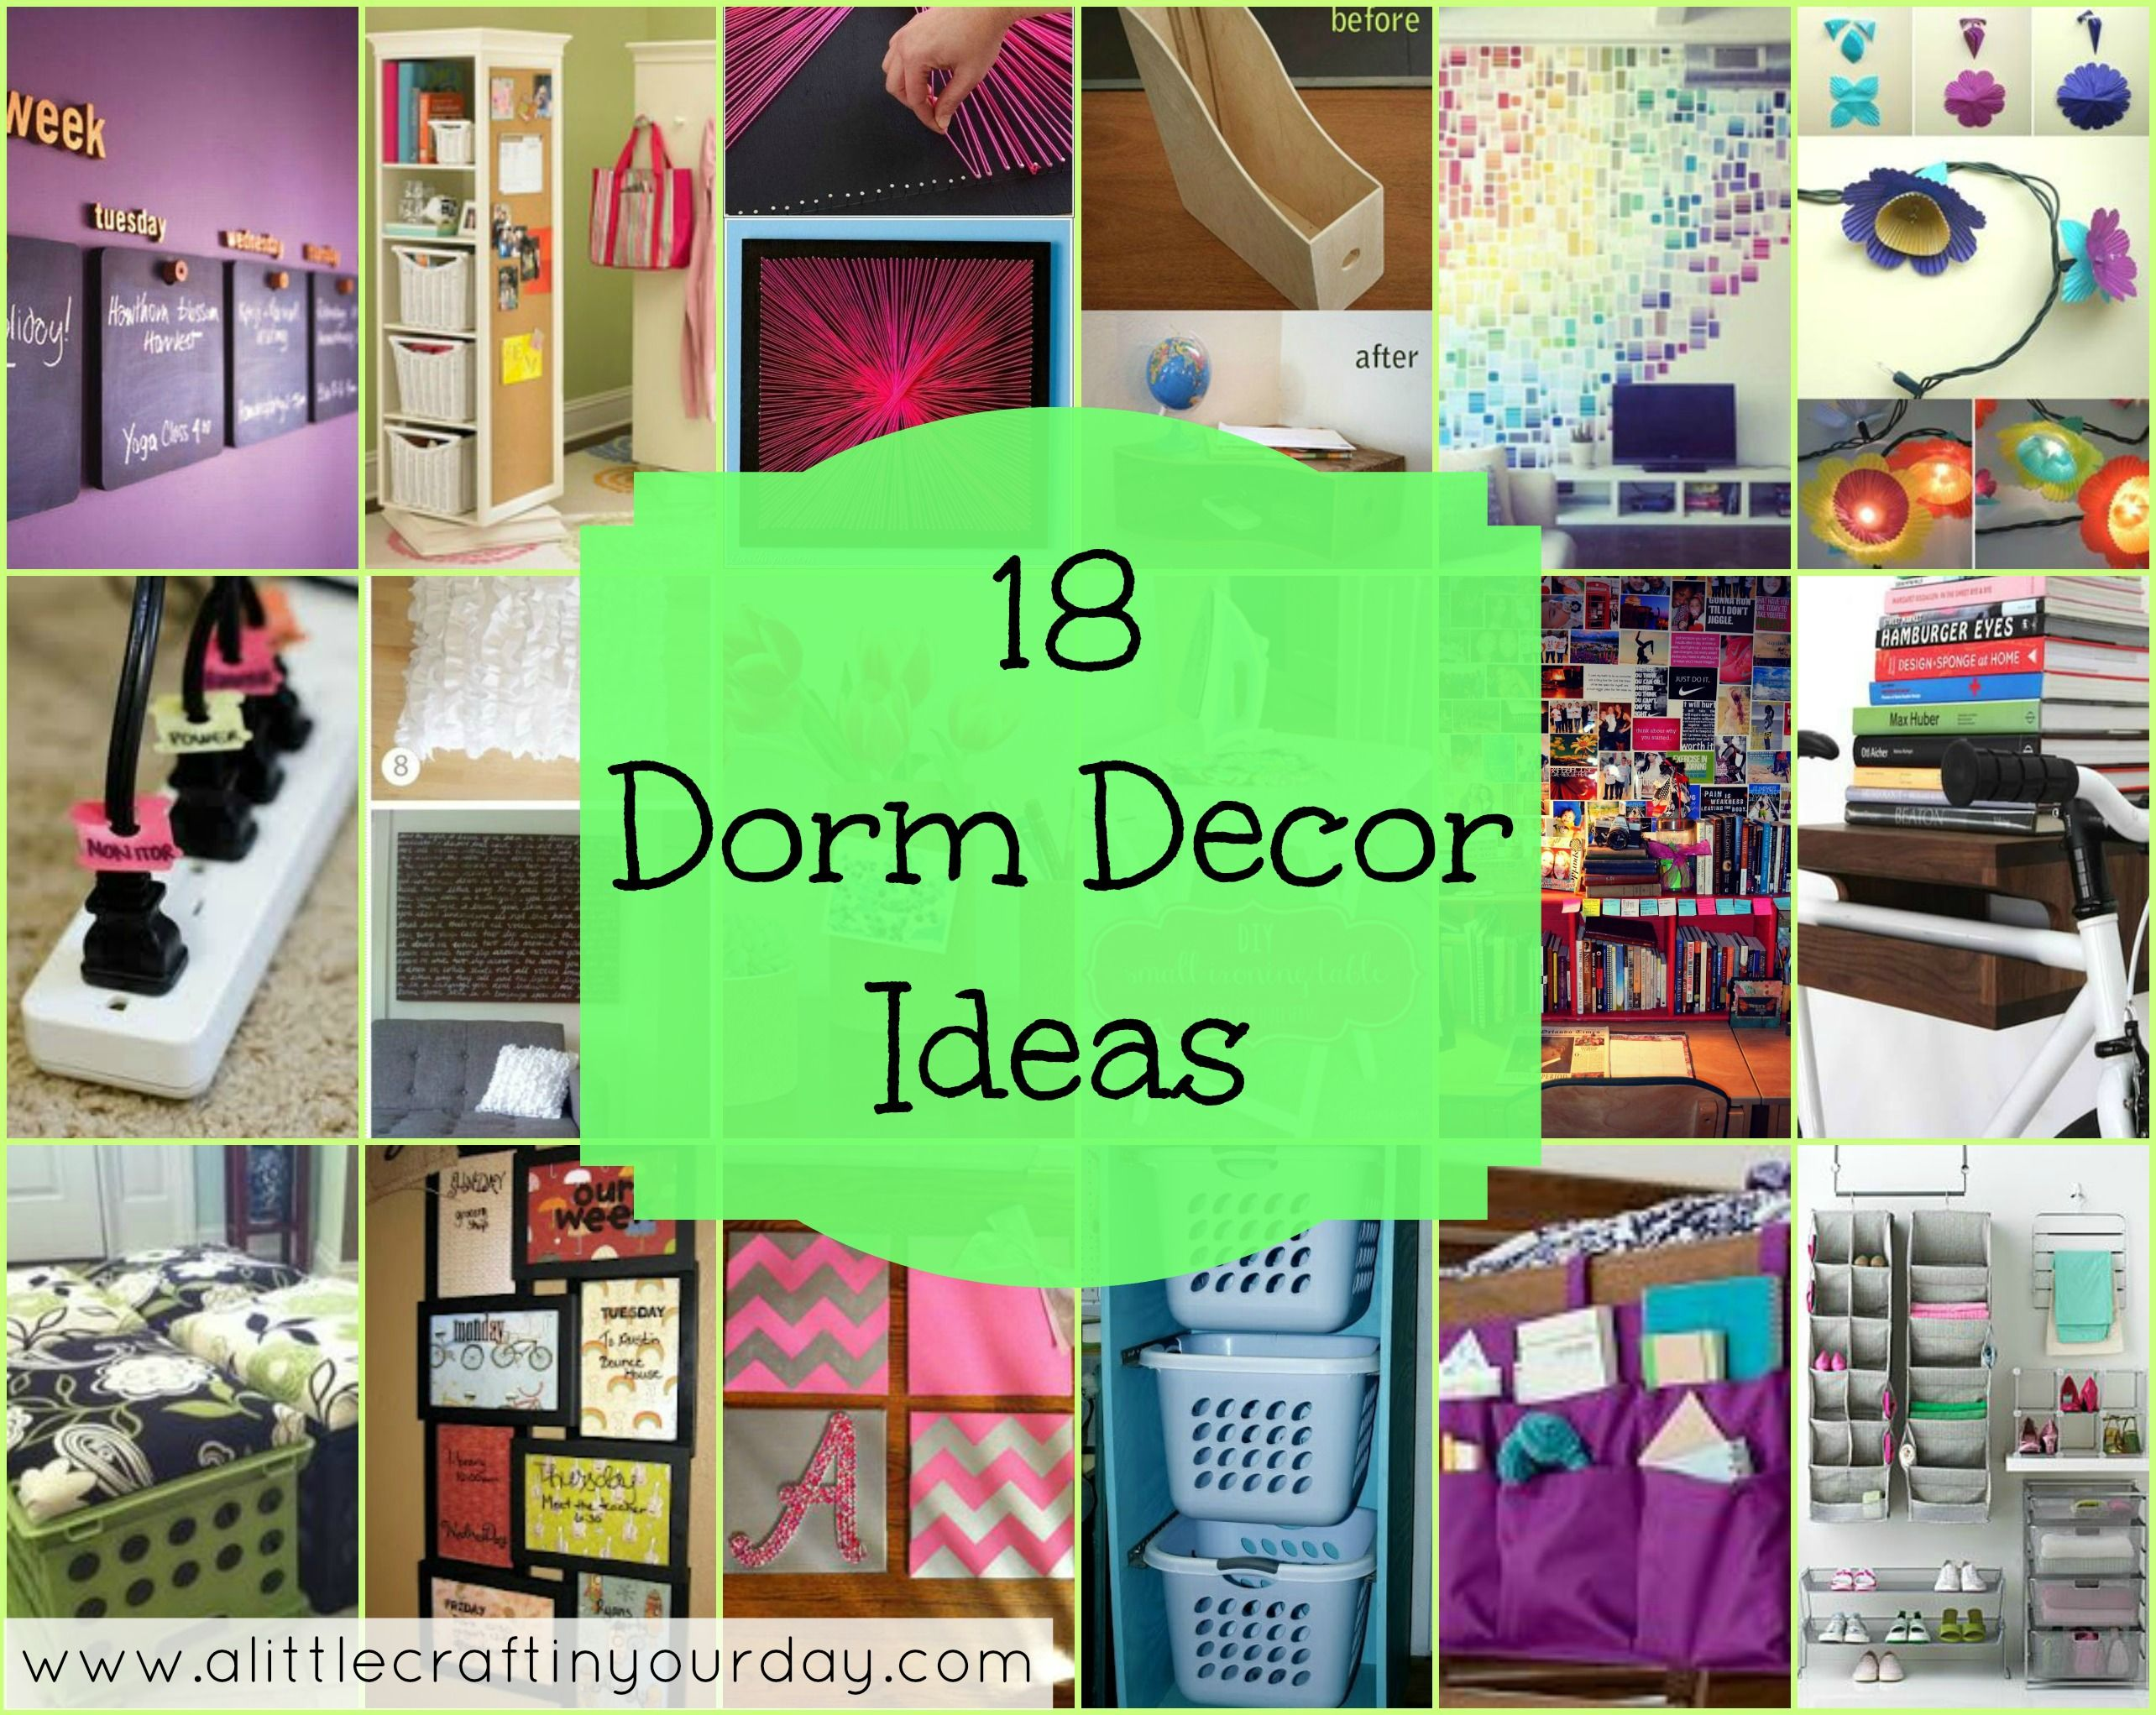 20 super simple crafts | dorm room themes, room themes and dorms decor